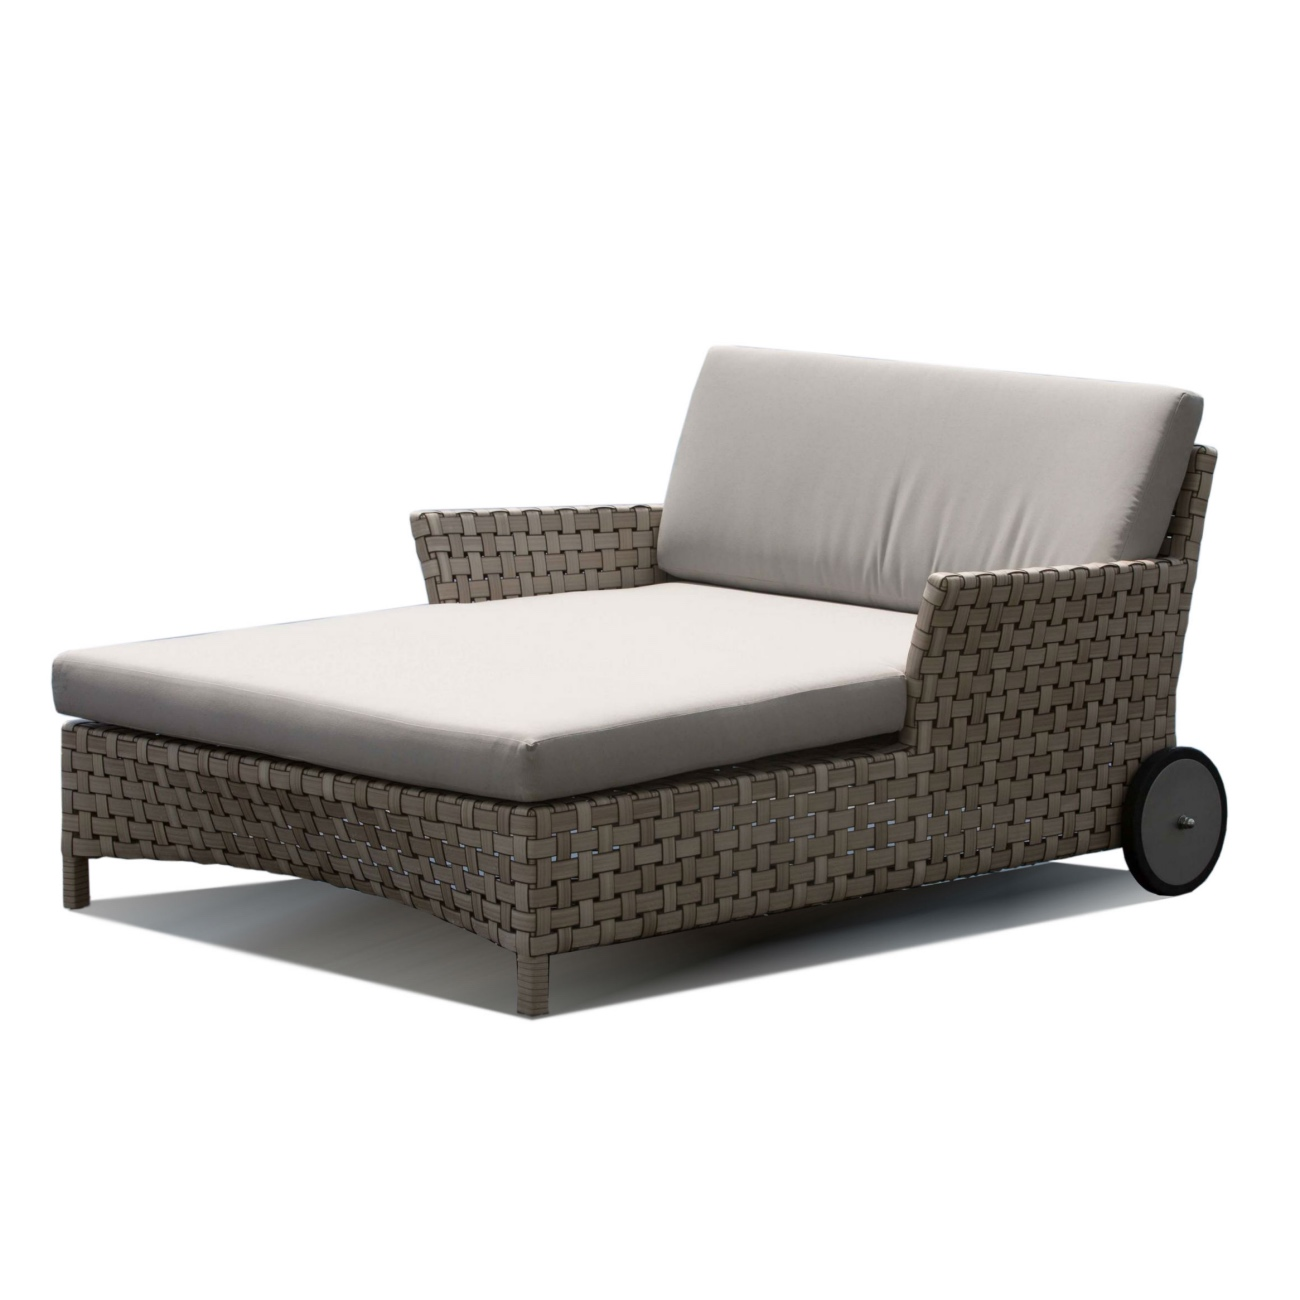 Skyline Cielo Daybed Luxury Outdoor Living